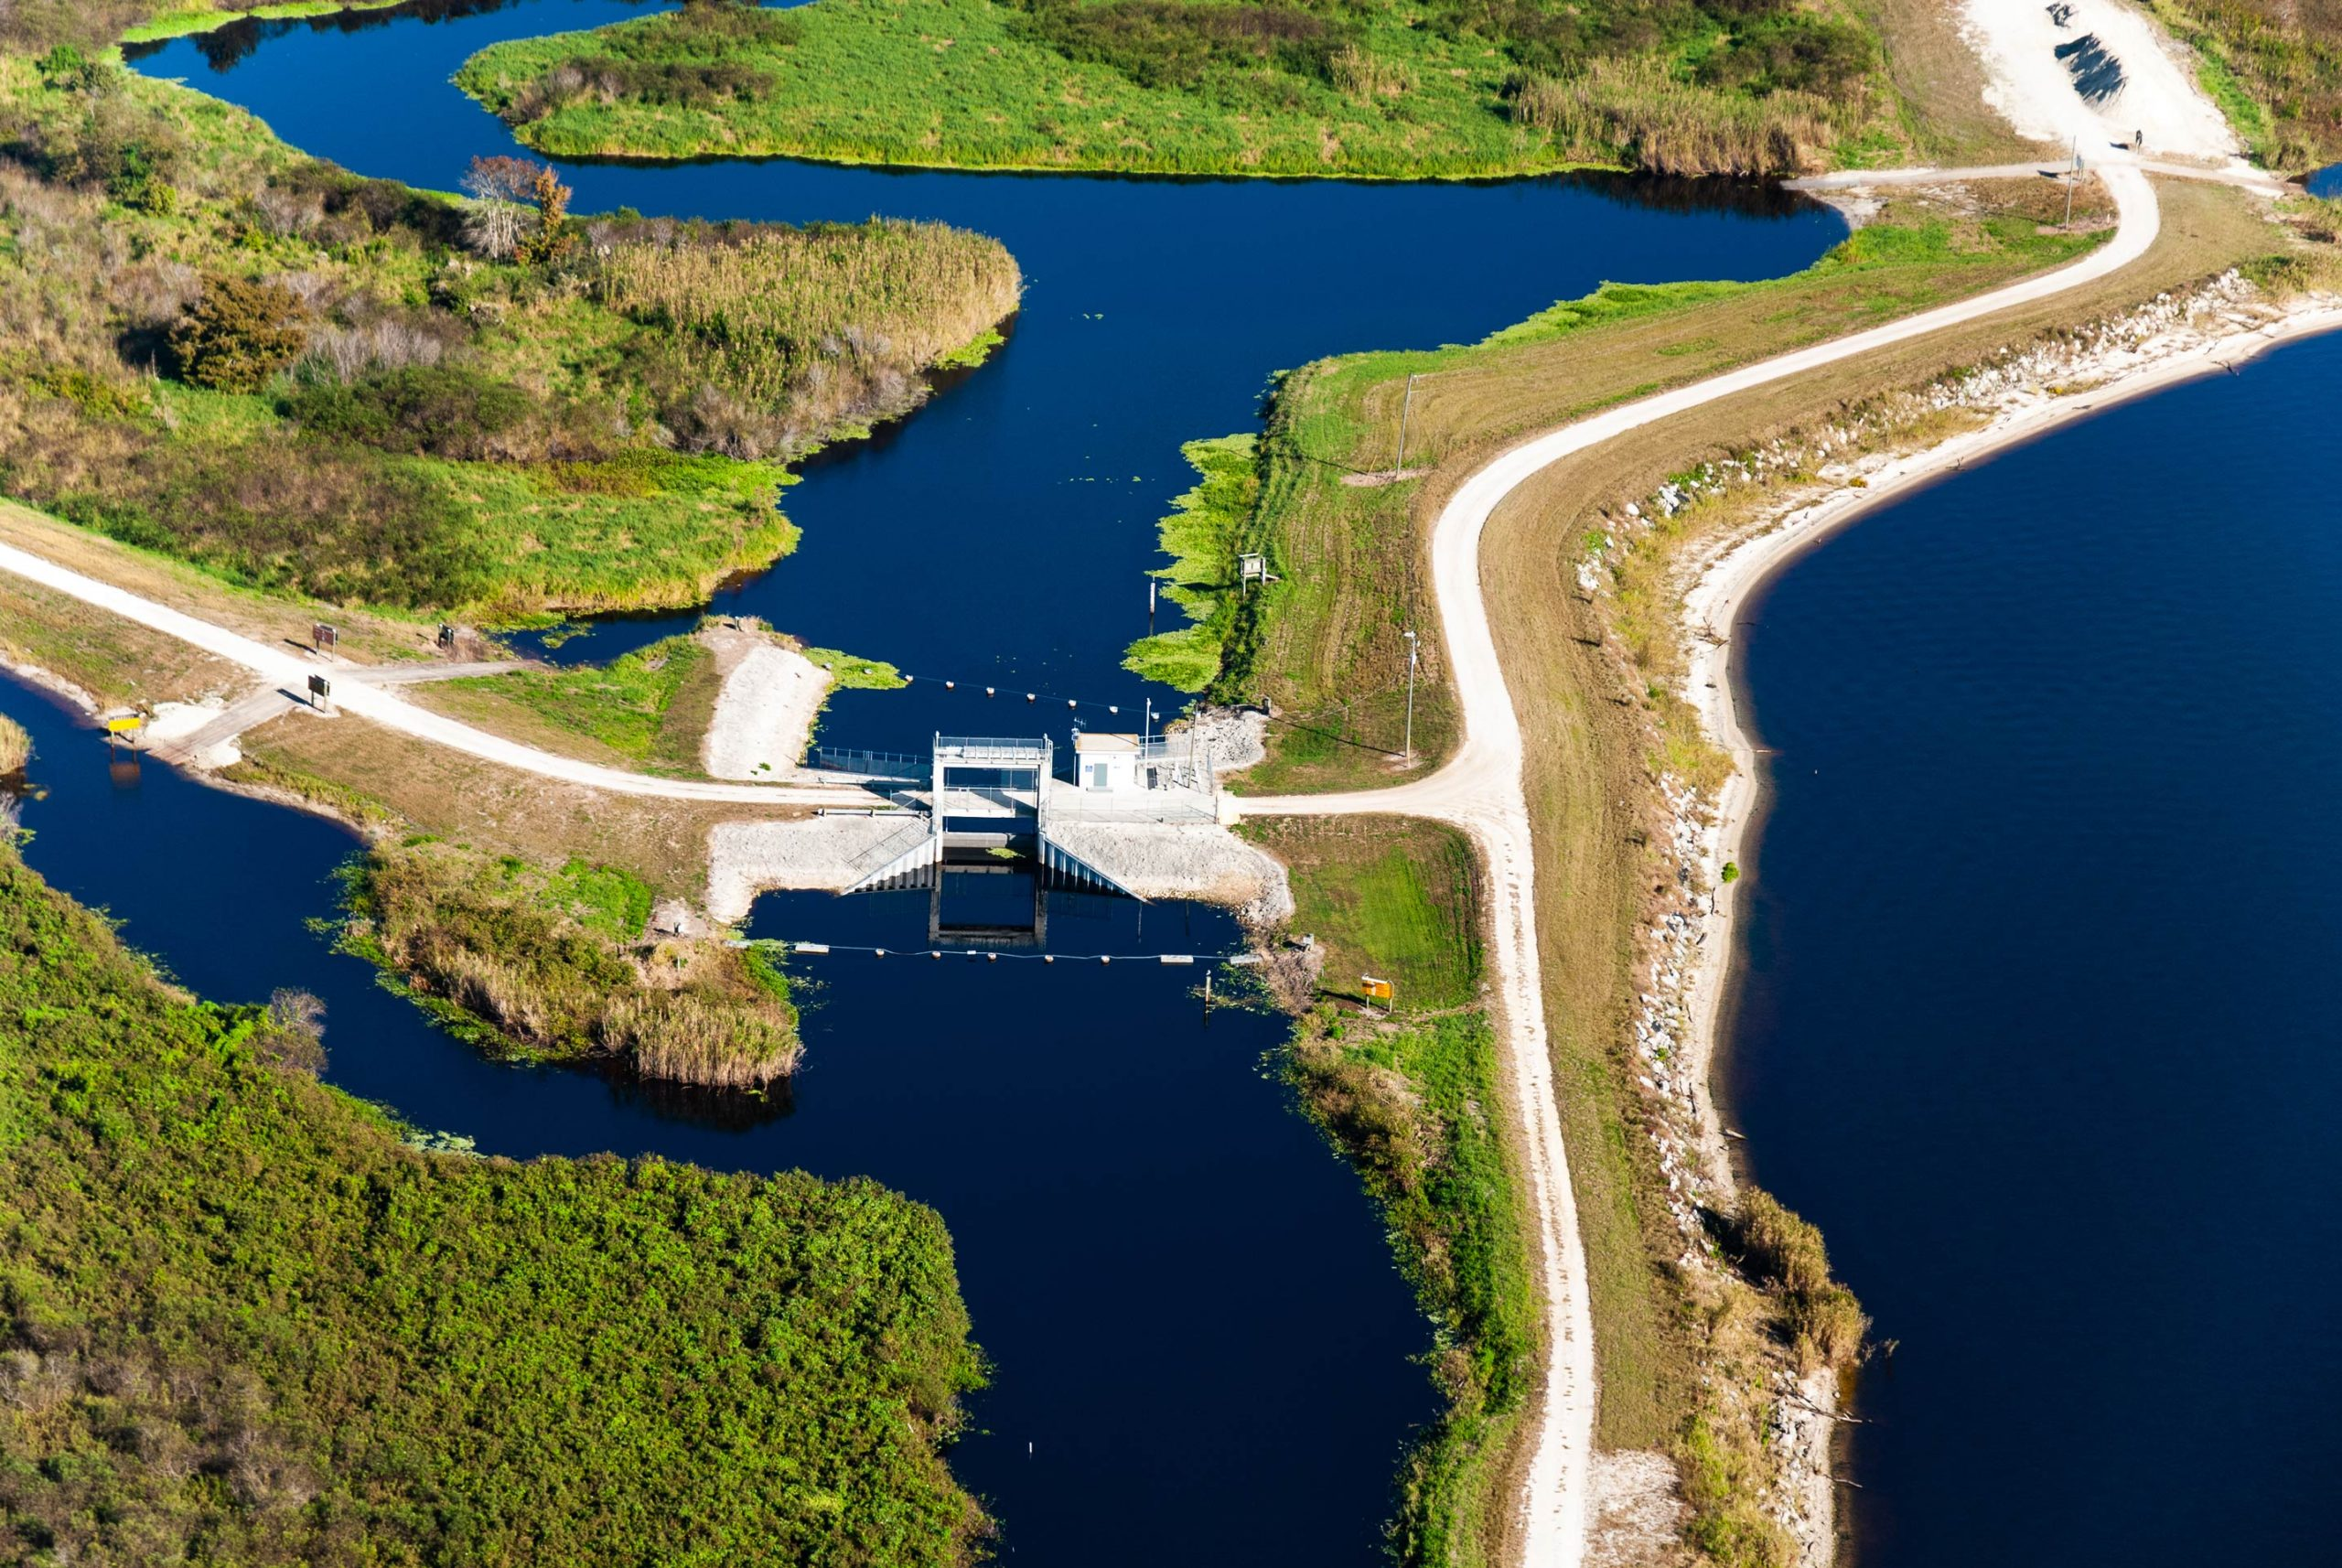 Aerial view of a water control structures in the Upper St. Johns River Basin Project